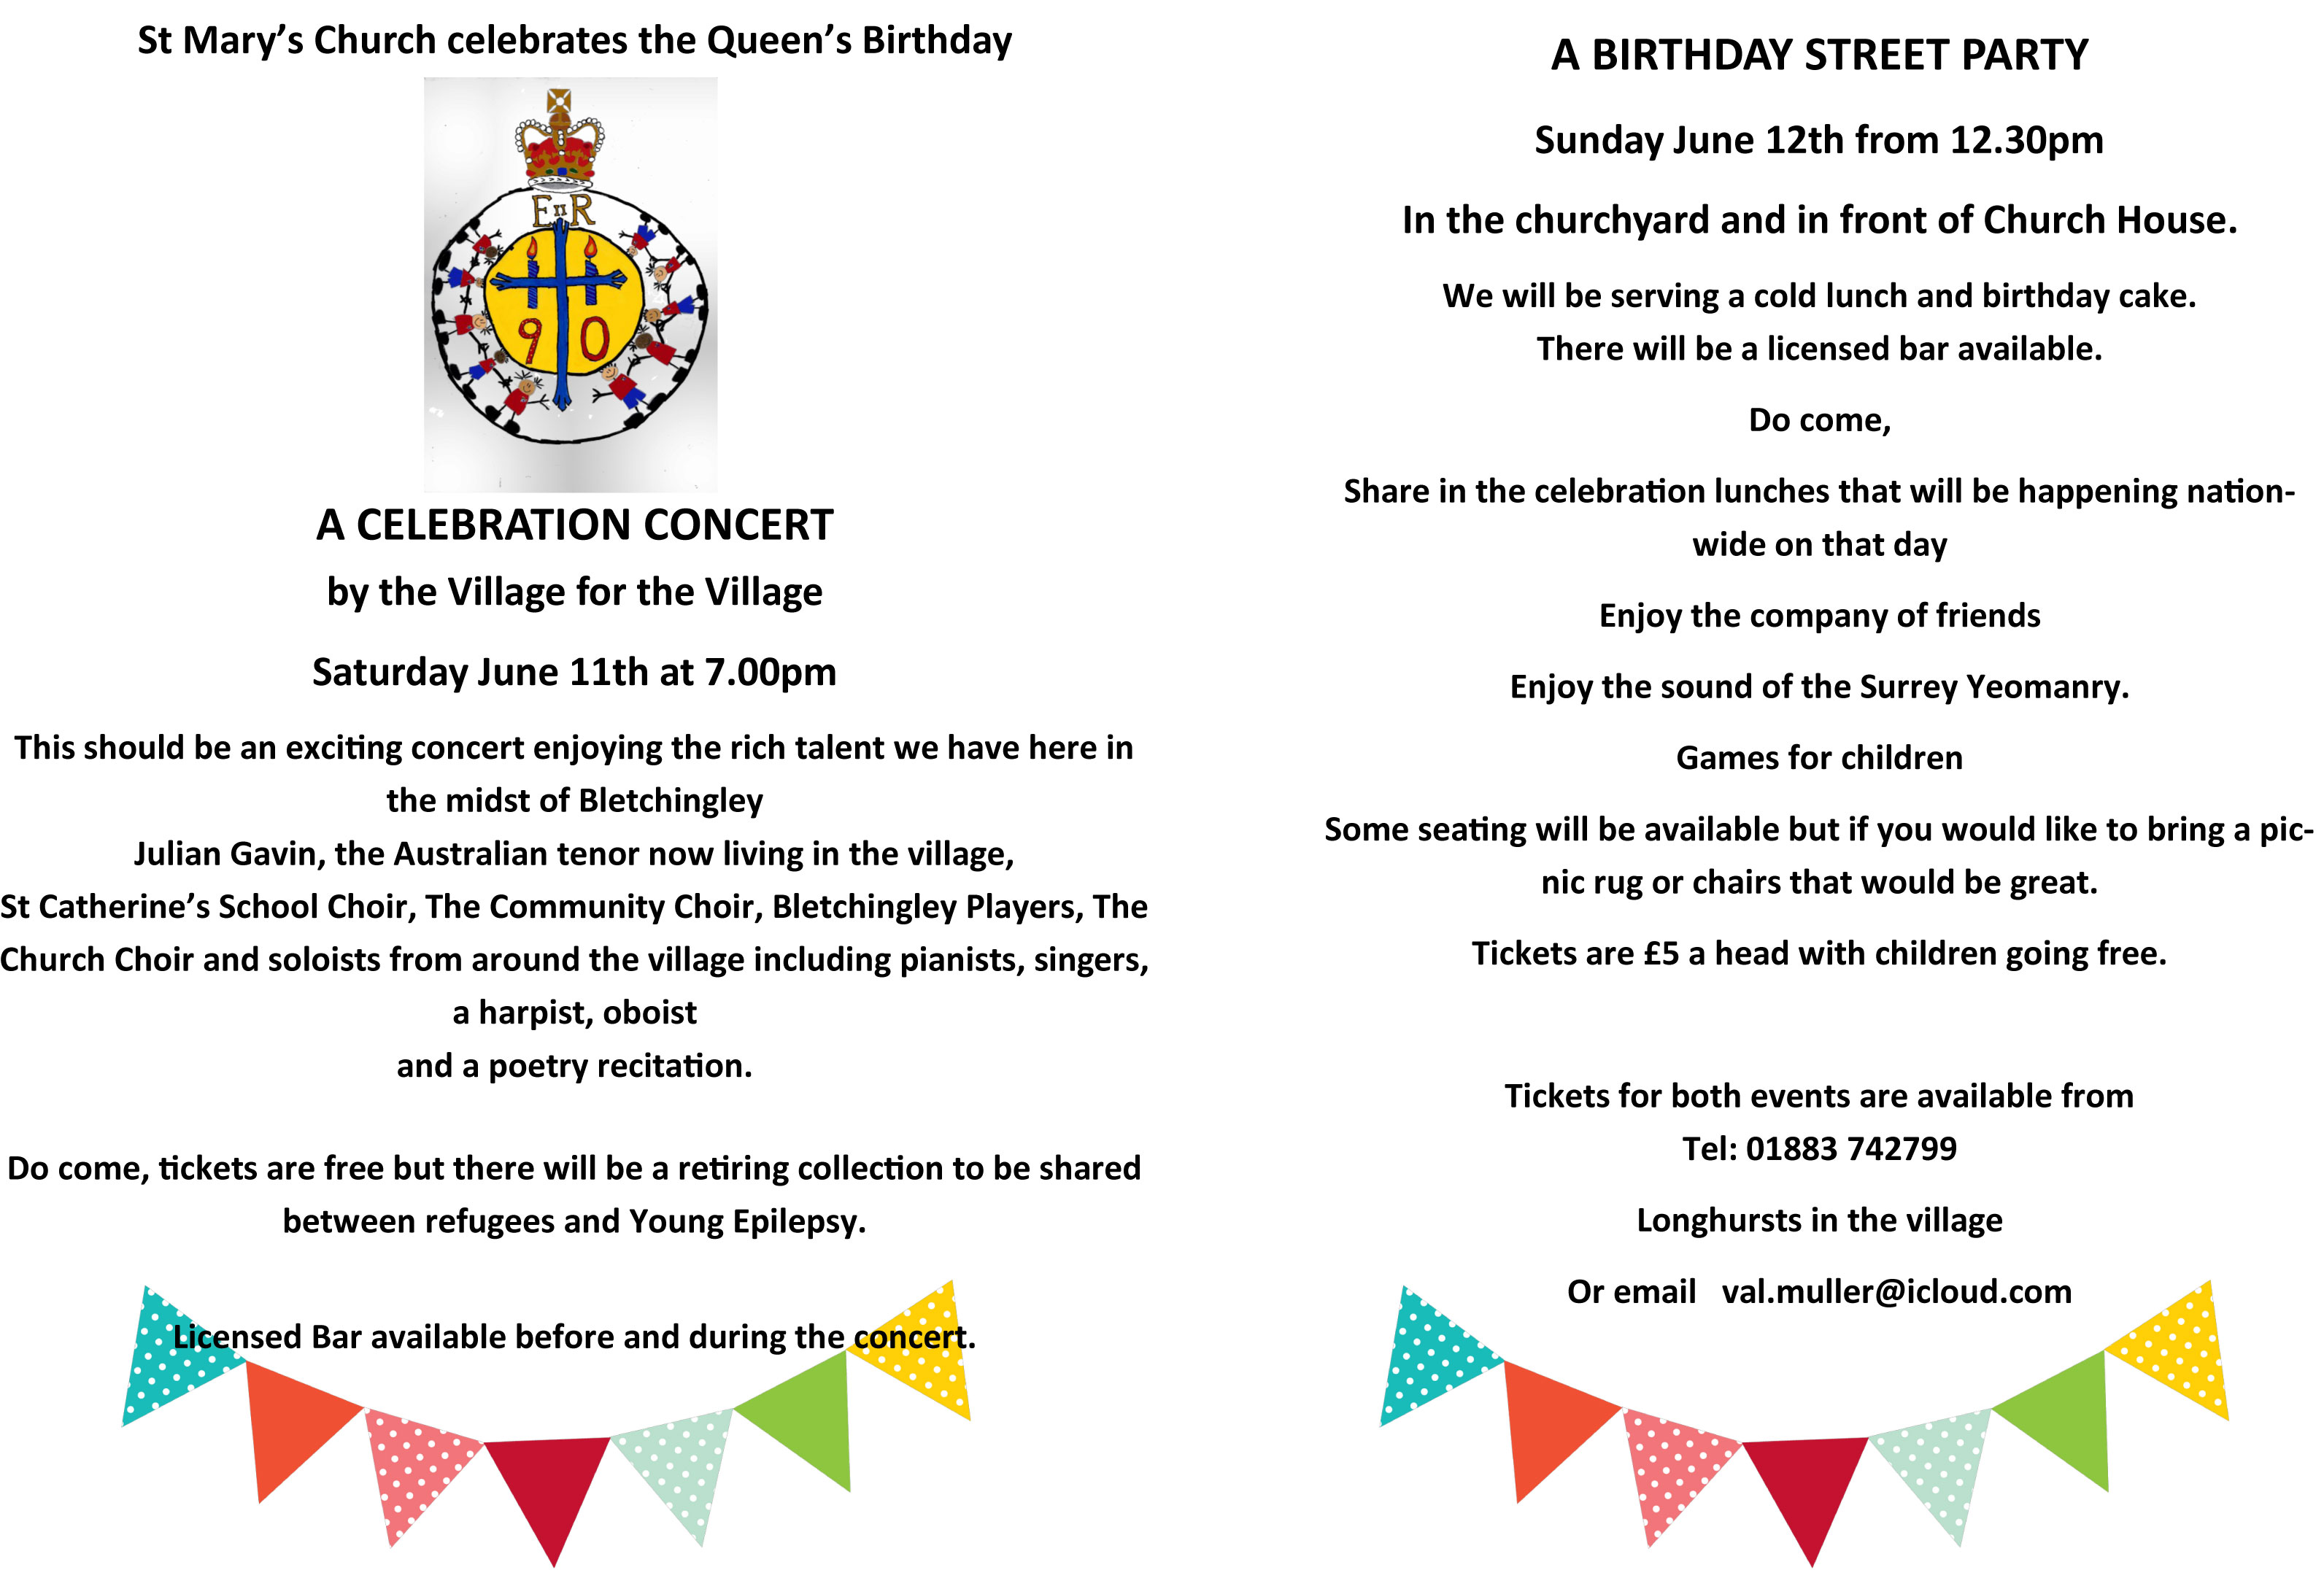 A celebration concert for the Queens 90th birthday